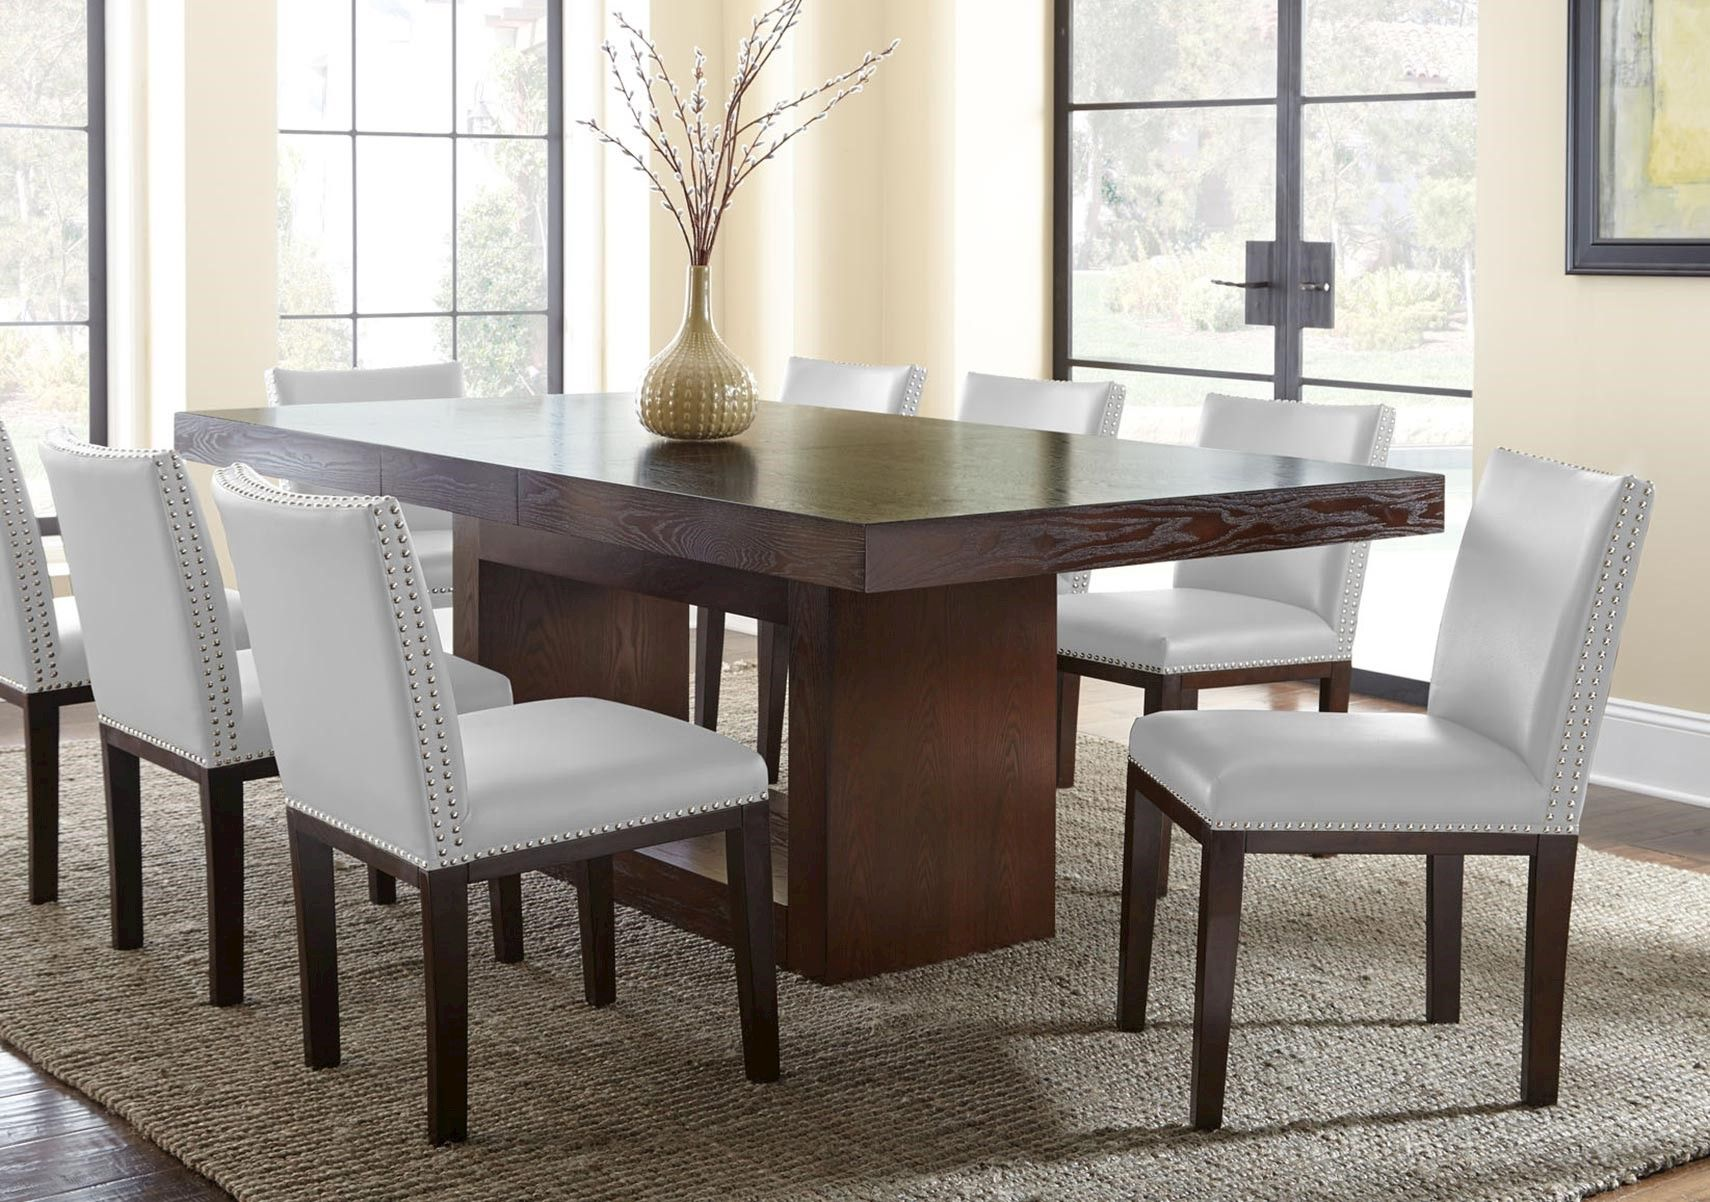 Lacks Antonio 7 Pc Dining Set Contemporary Style Homes Dining